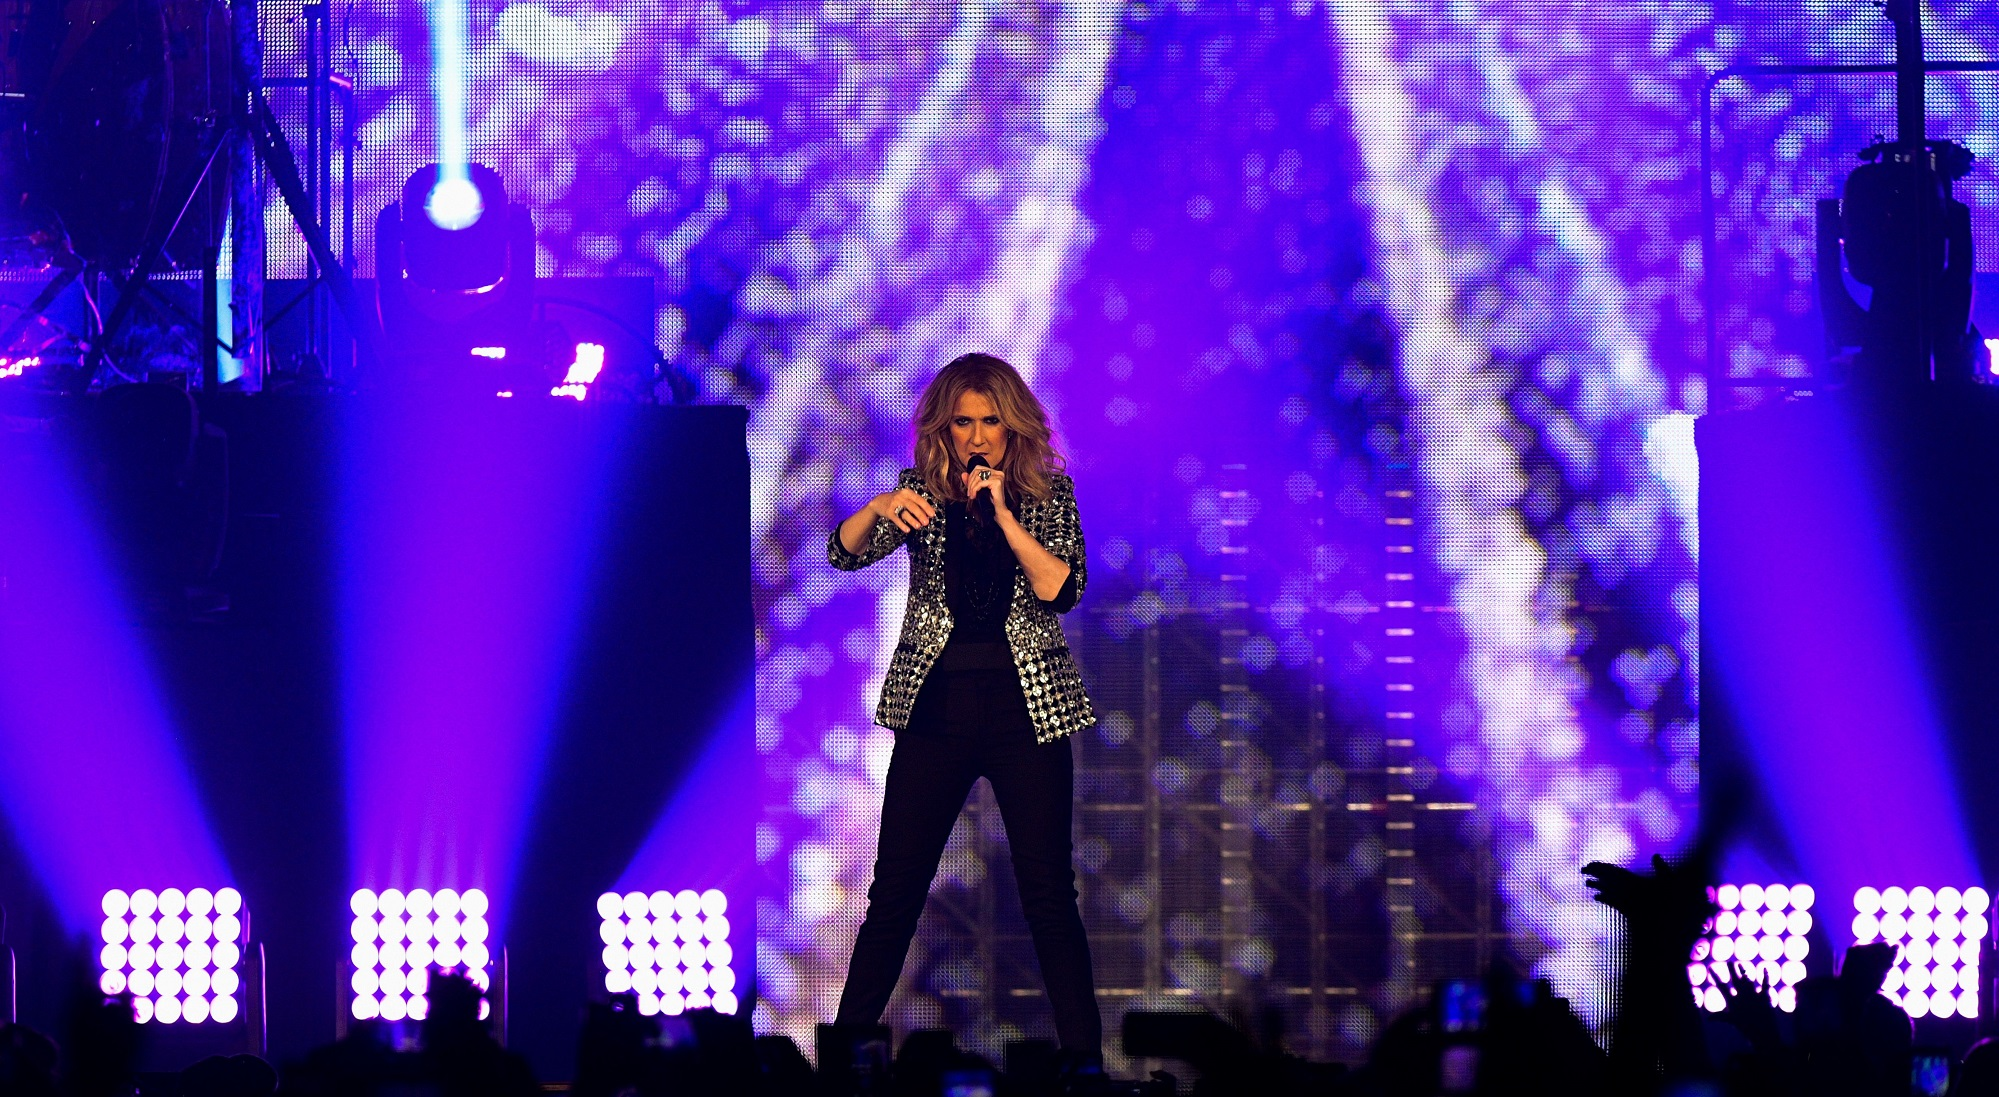 Celine Dion is making a rare trip to Buffalo this winter. (Martin Bureau/Getty Images)